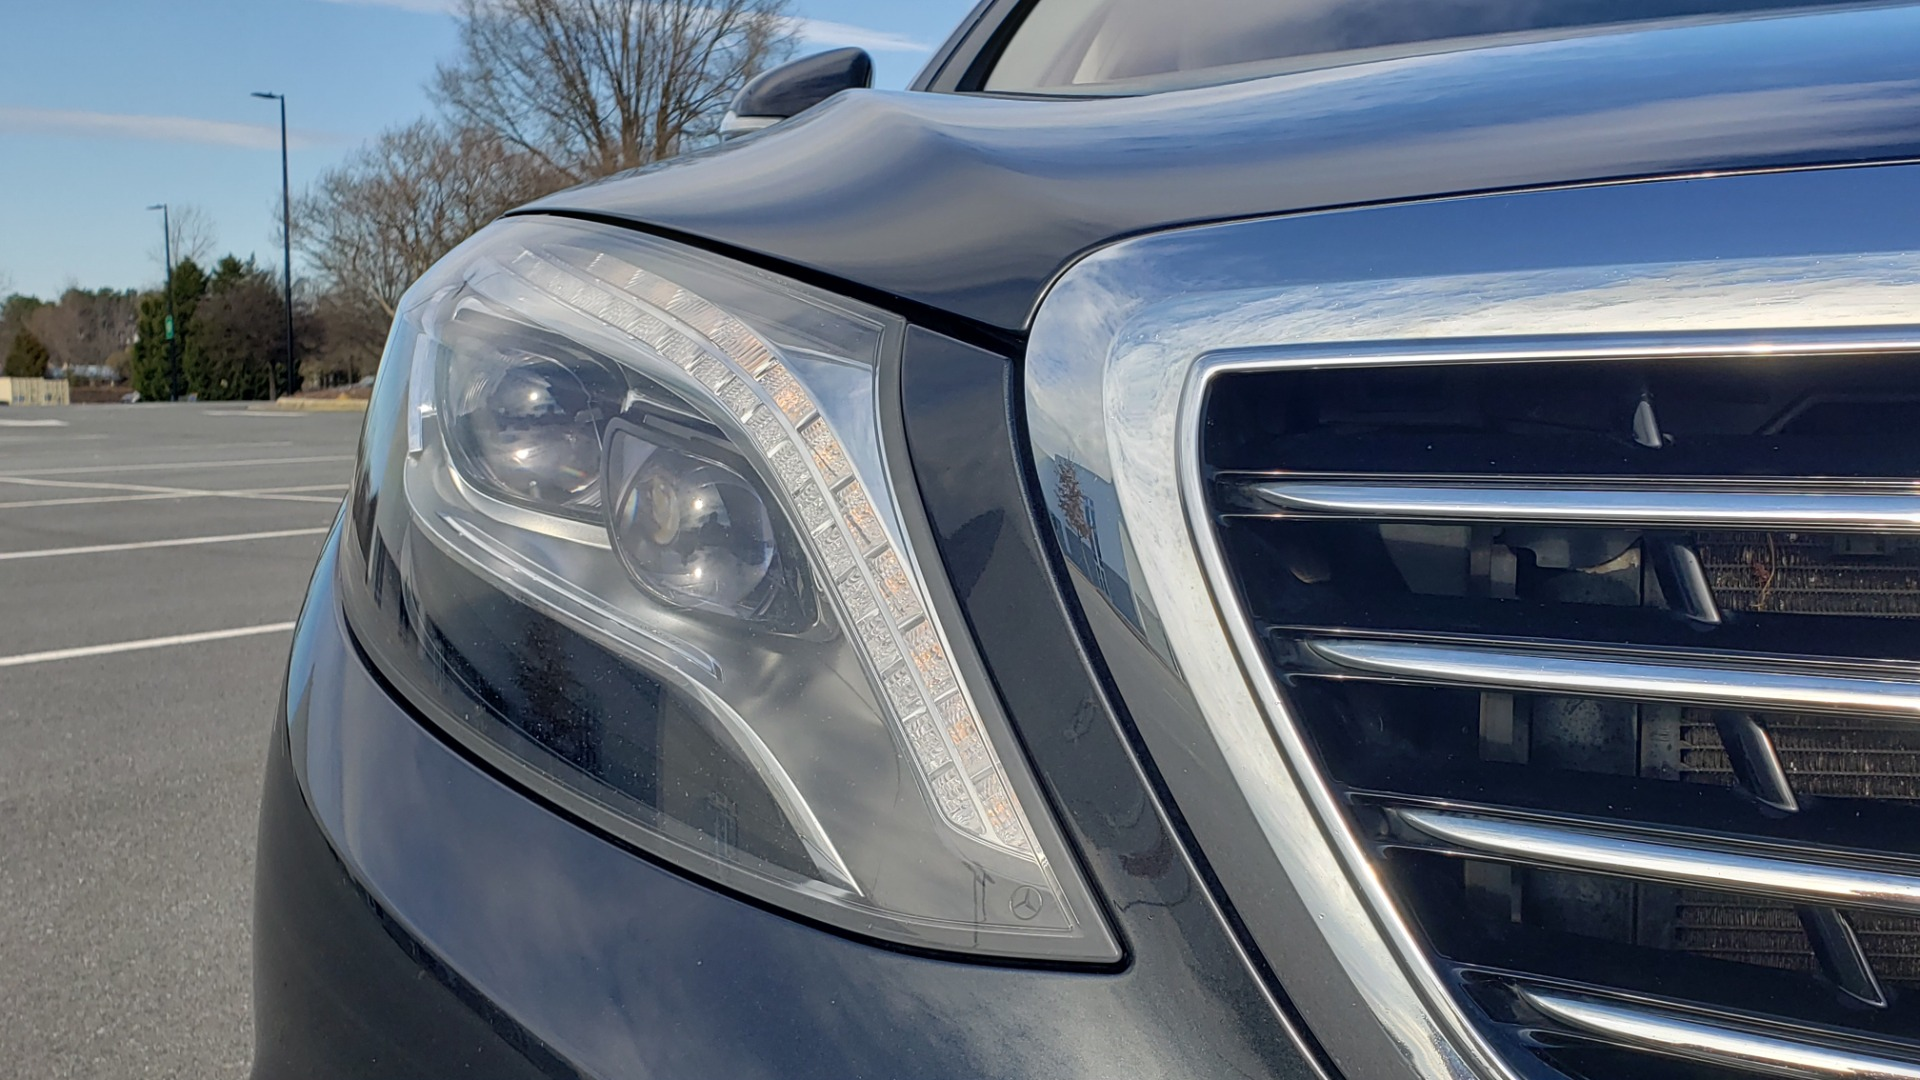 Used 2015 Mercedes-Benz S-CLASS S 550 PREMIUM / SPORT / WARMTH&COMFORT / DRVR ASST / SRND VIEW for sale Sold at Formula Imports in Charlotte NC 28227 25